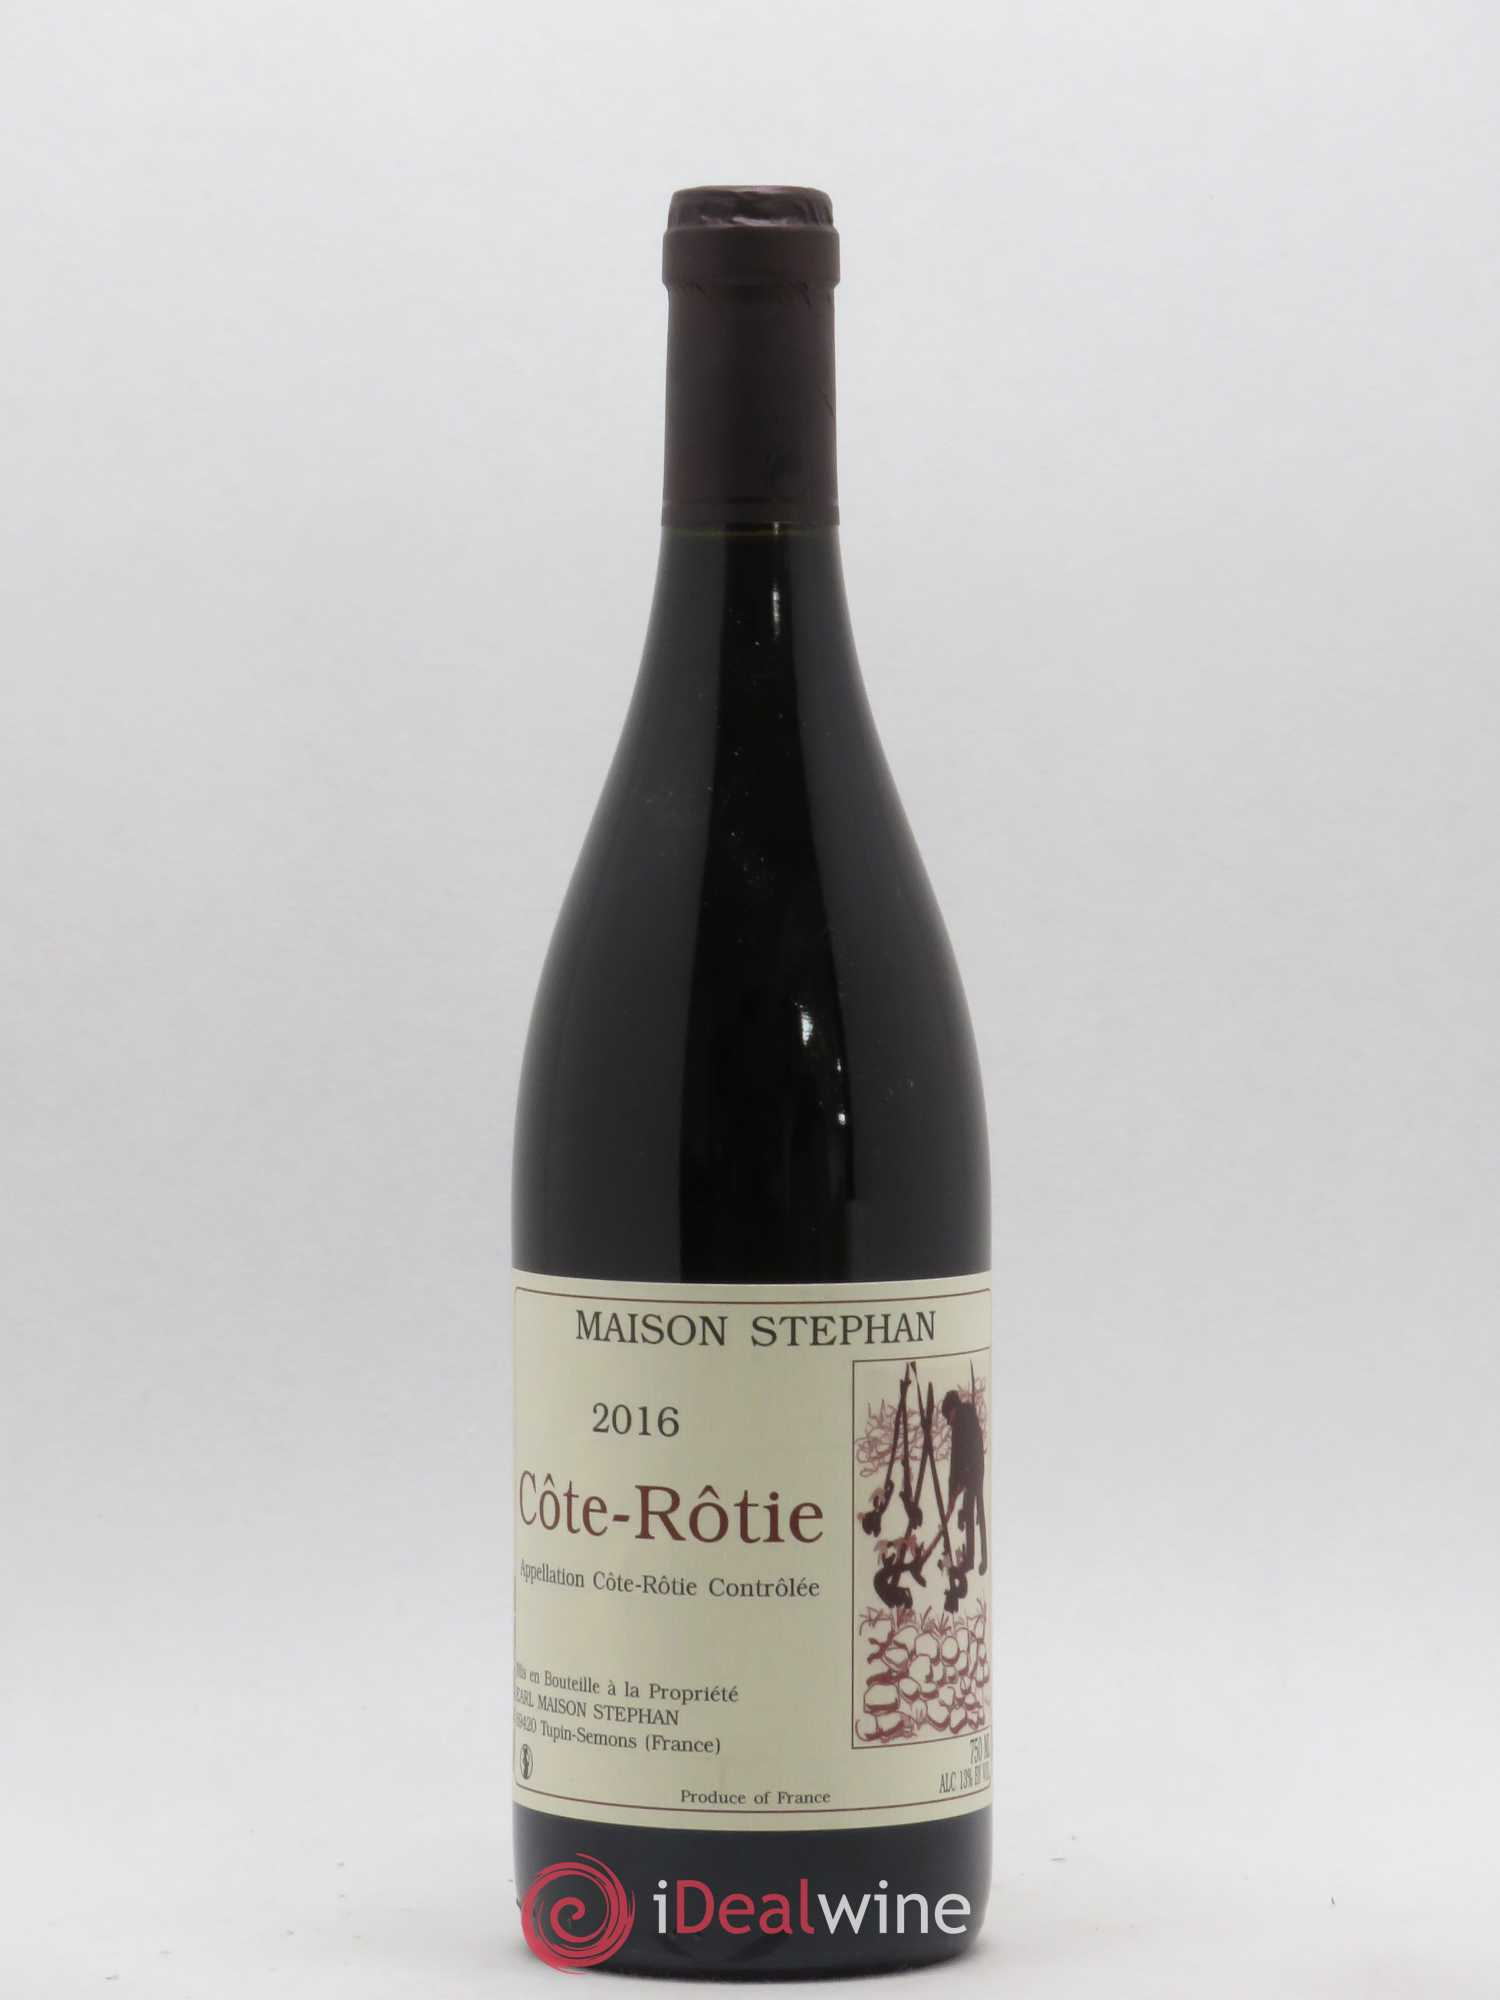 Côte-Rôtie Jean-Michel Stephan  2016 - Lot of 1 Bottle